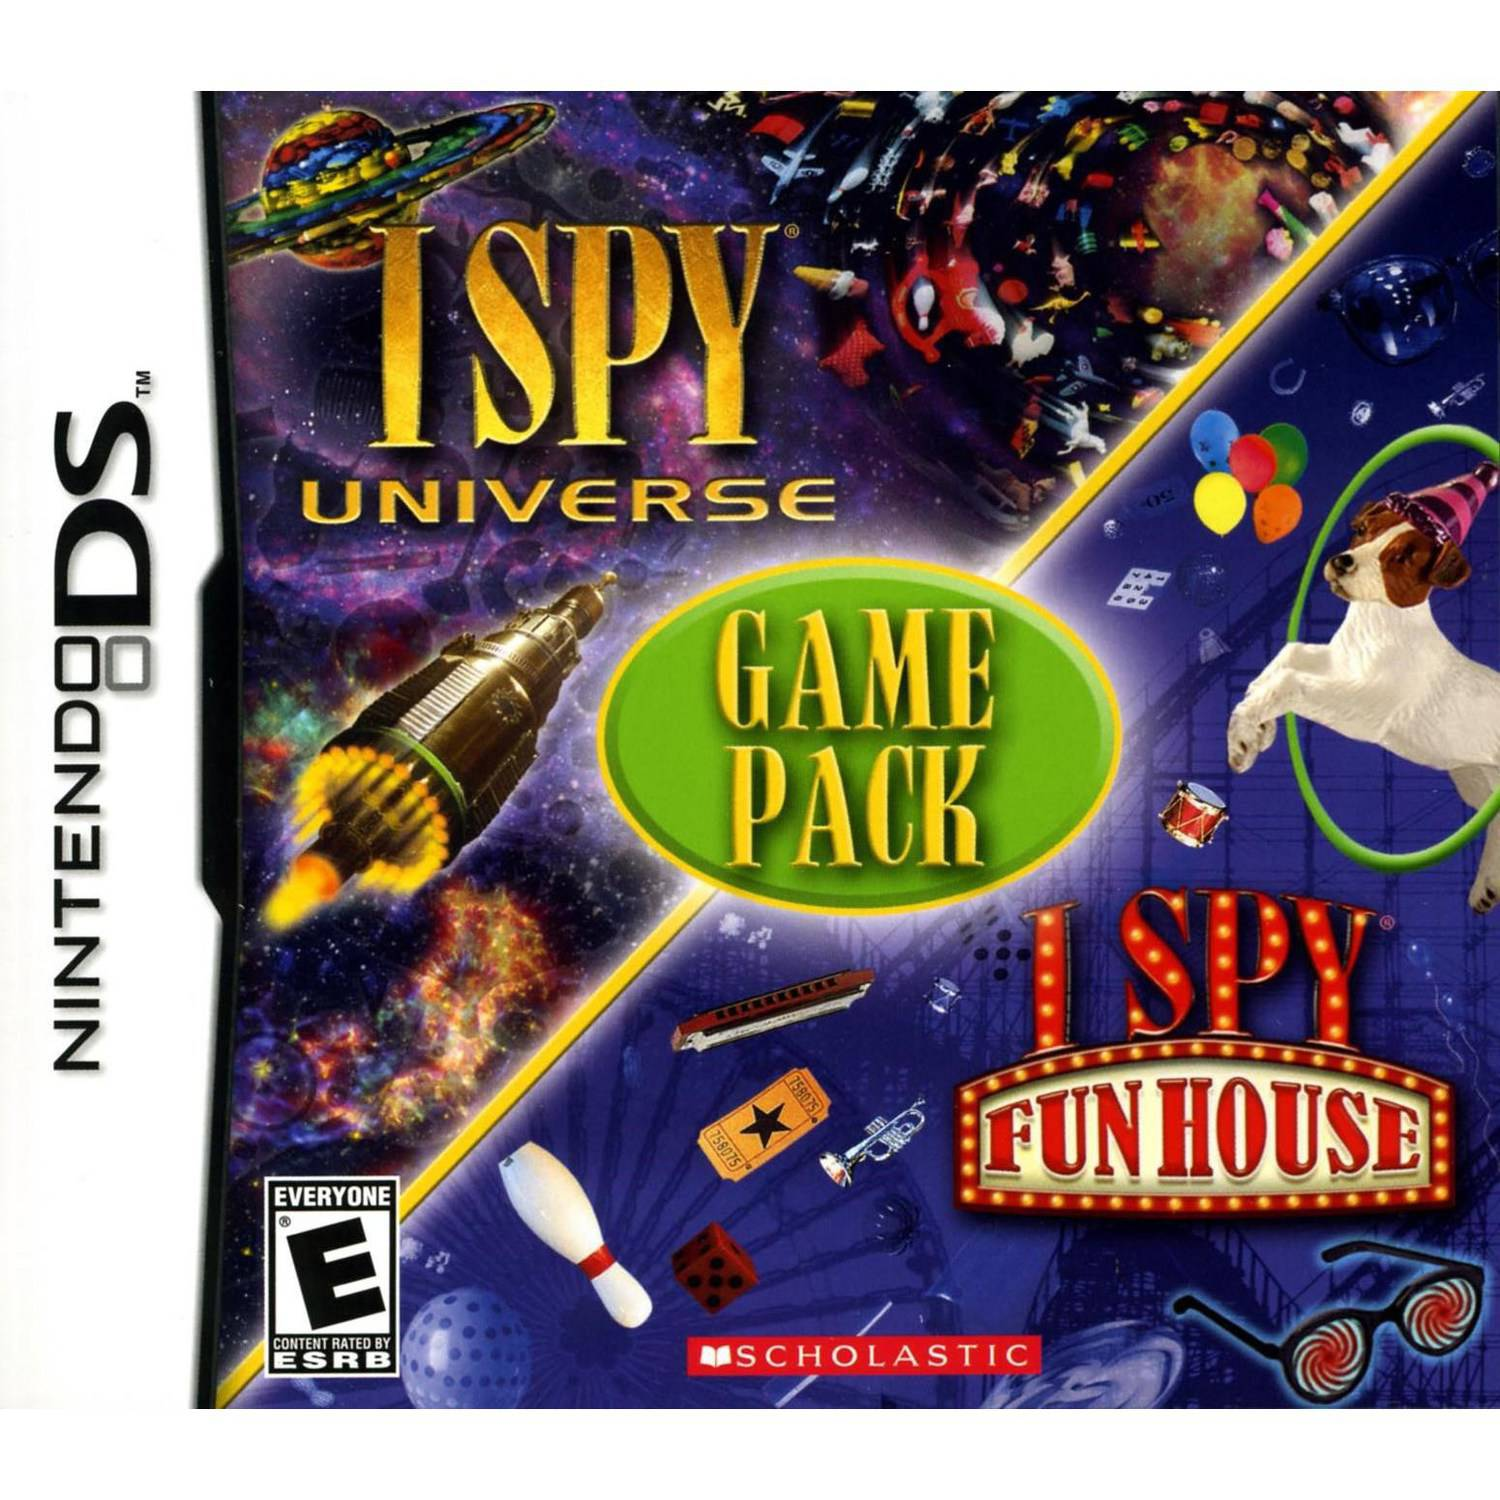 I Spy Game Universe/Fun House (DS) - Pre-Owned